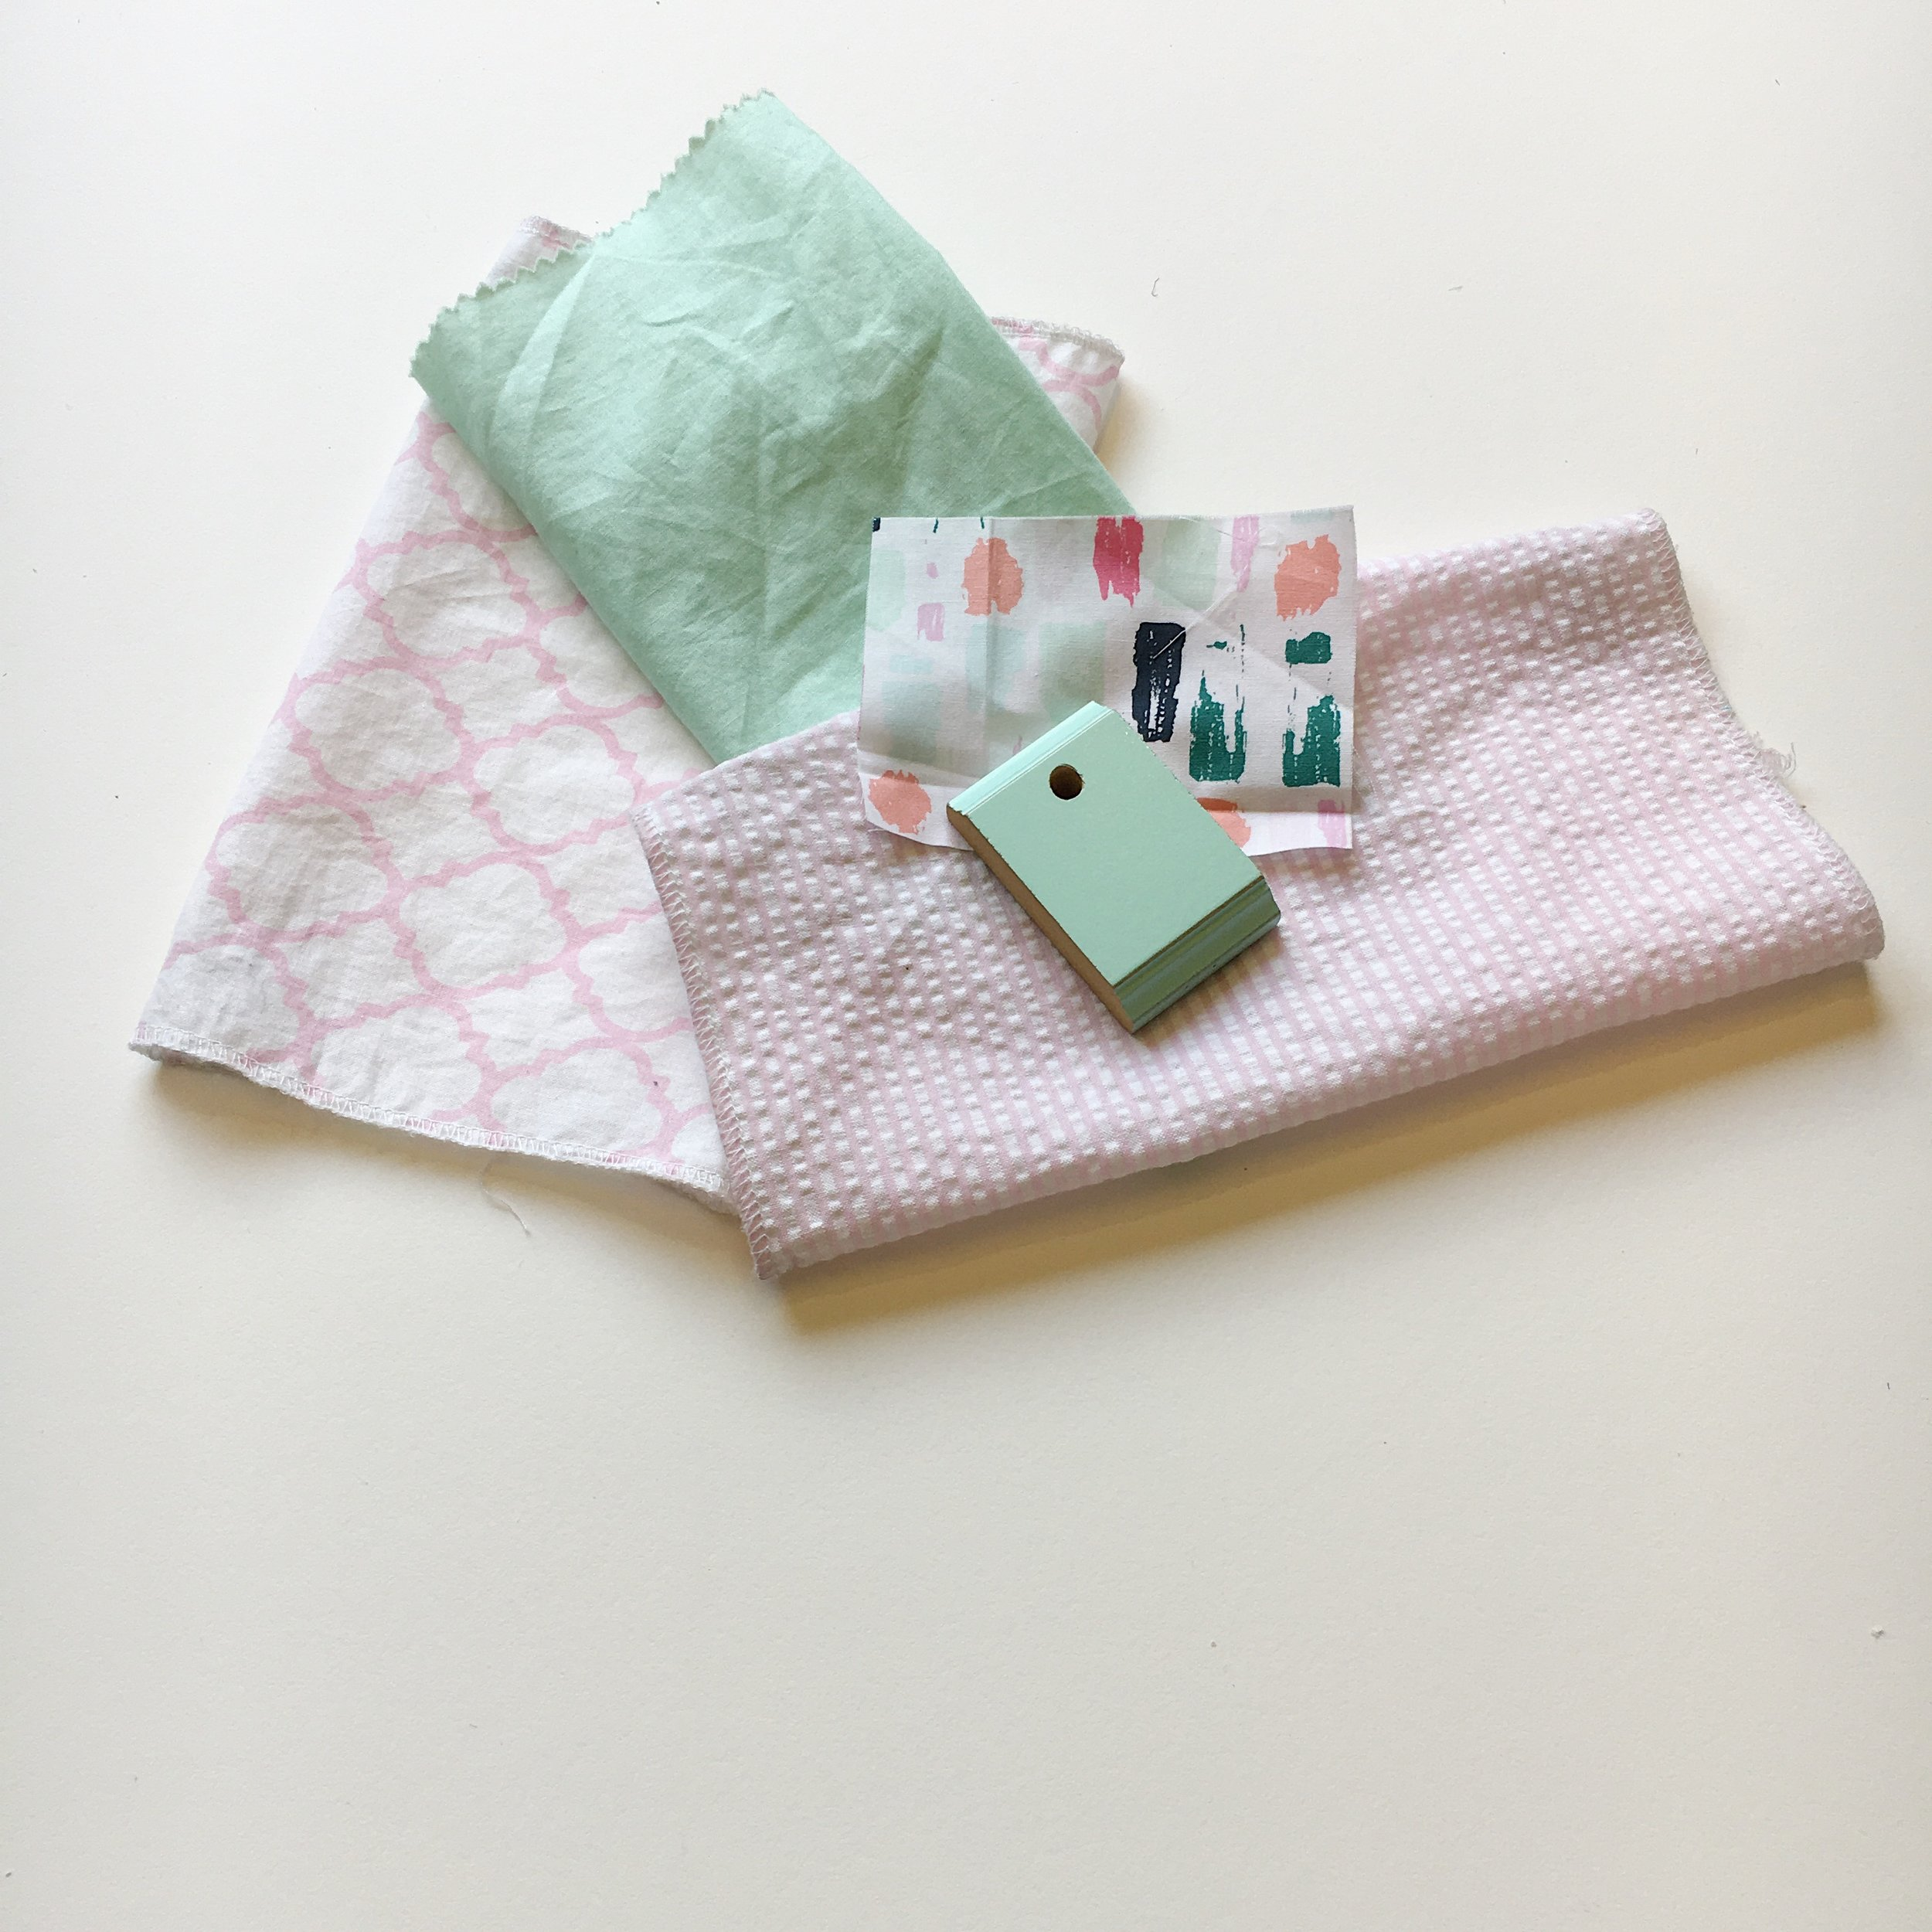 Bebe Chic w/ Newport Cottages